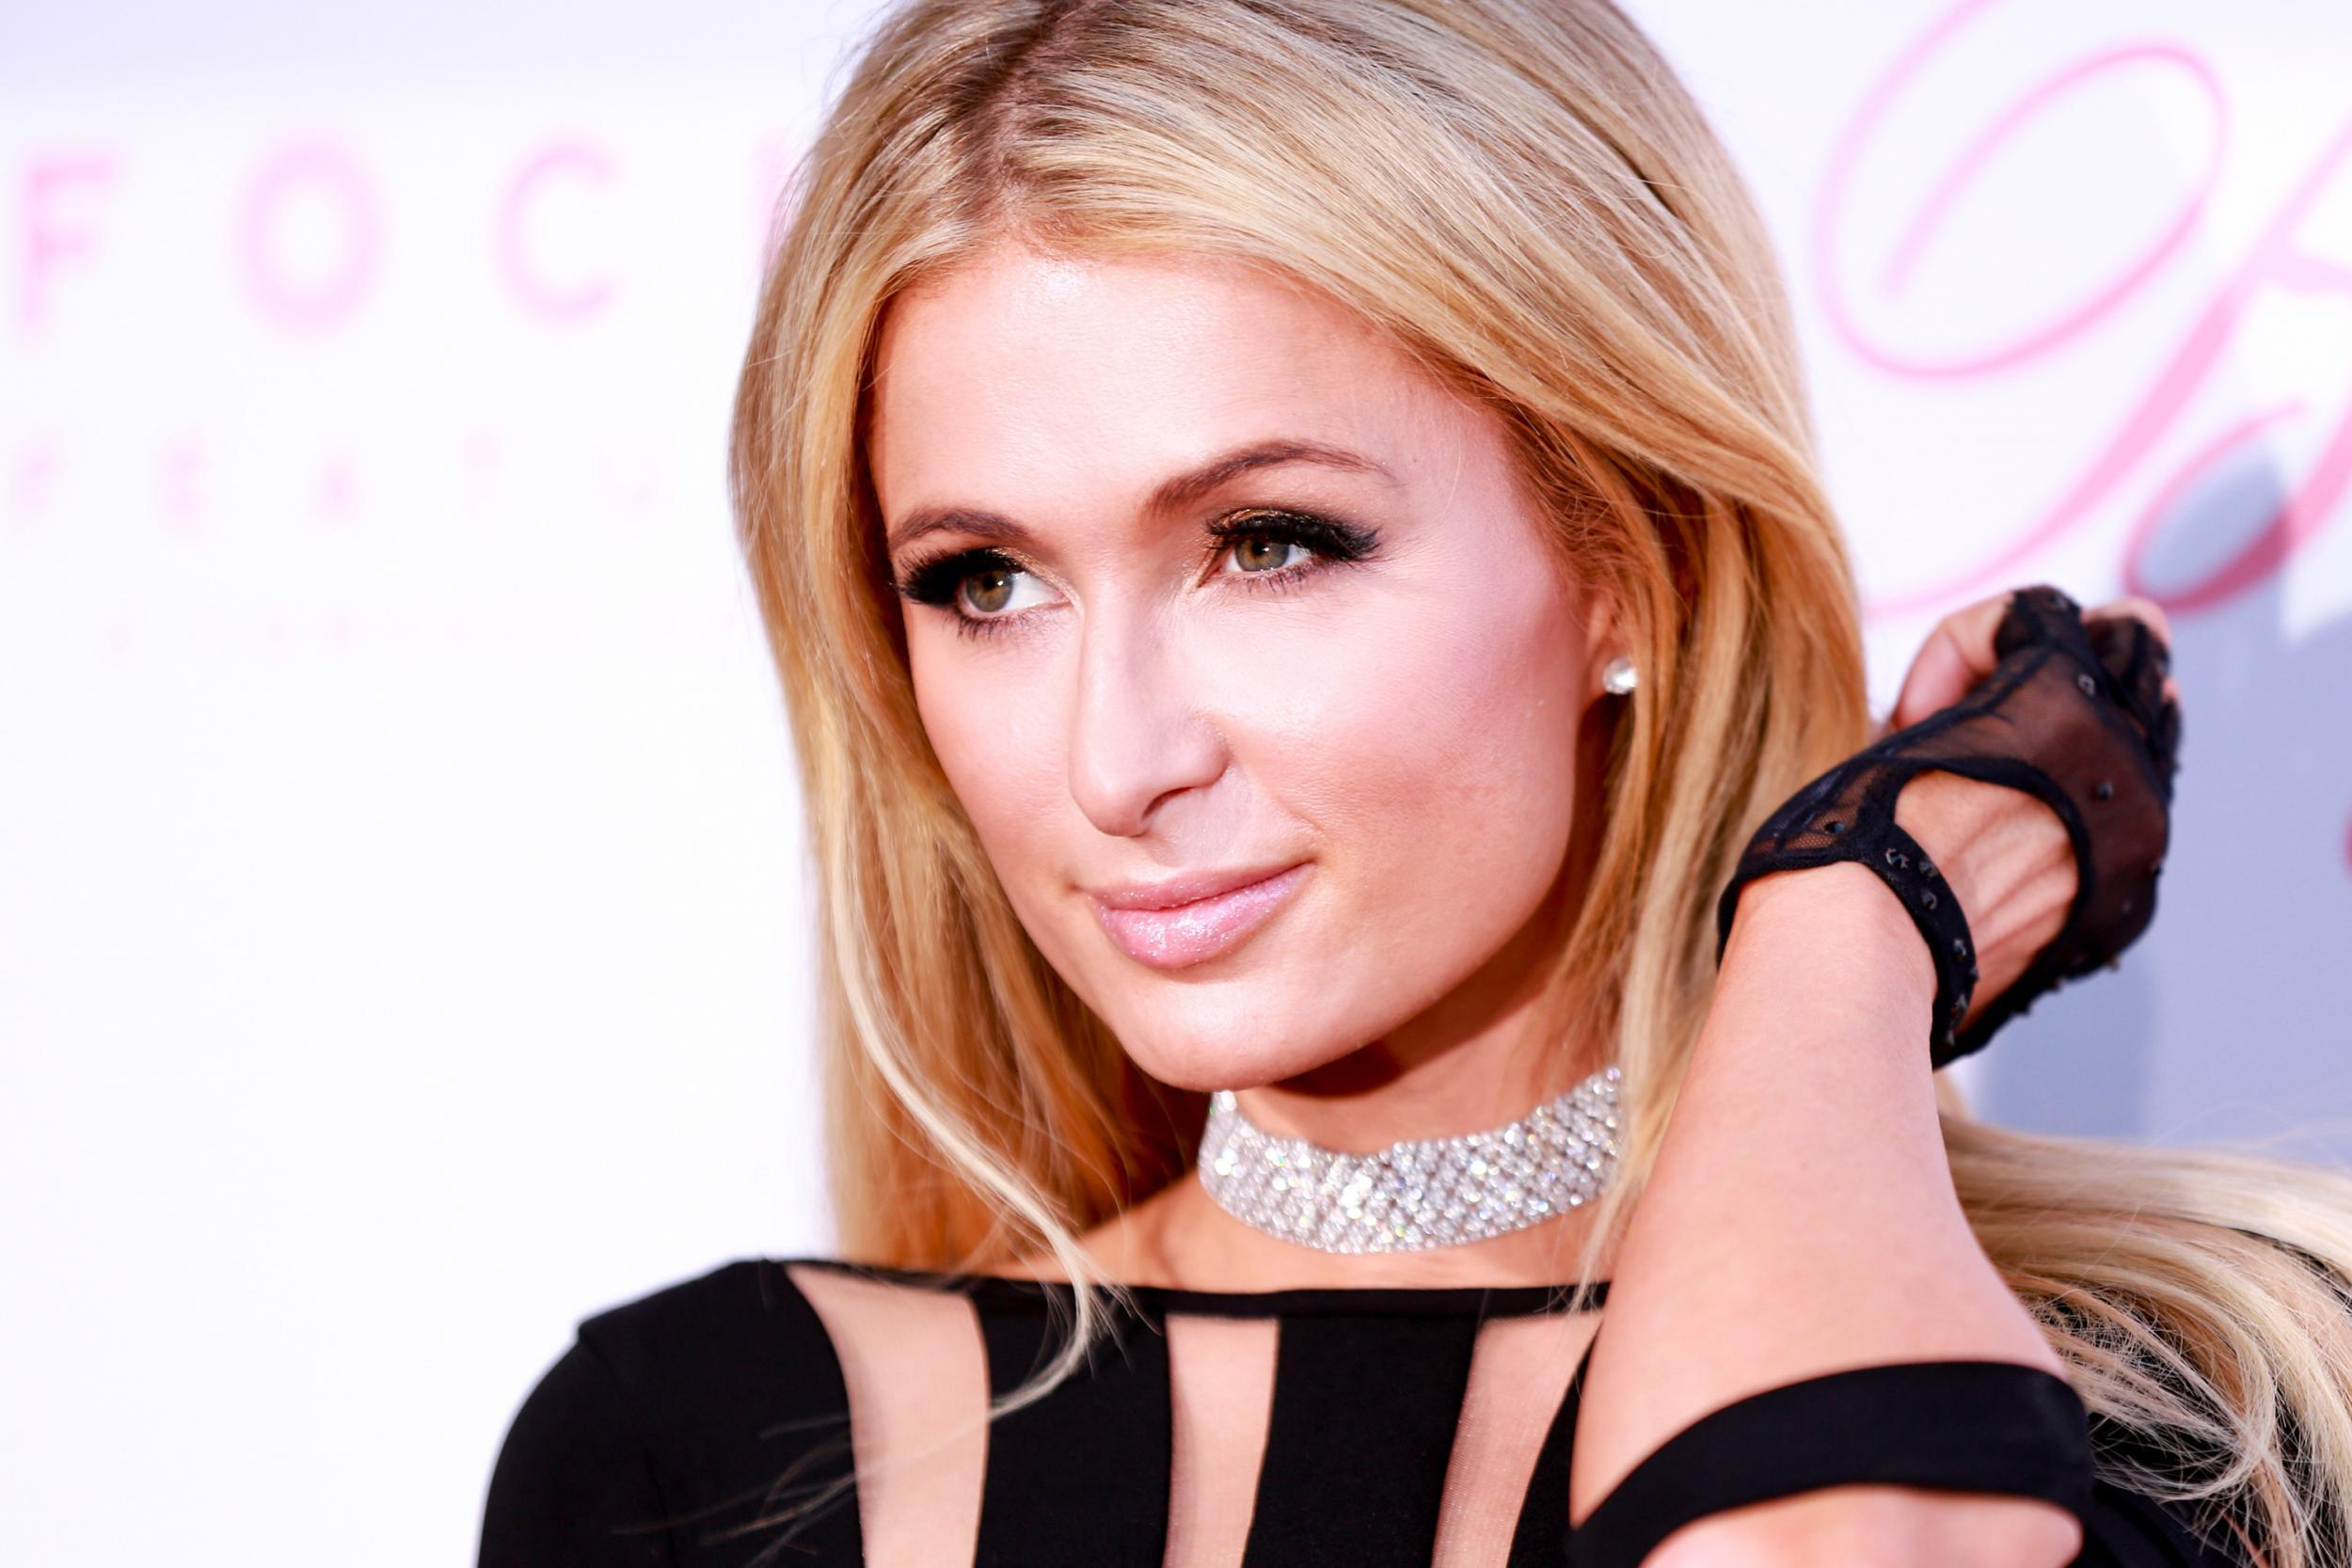 Paris Hilton has revealed the truth about her legendary night out with Britney and Lindsay Lohan